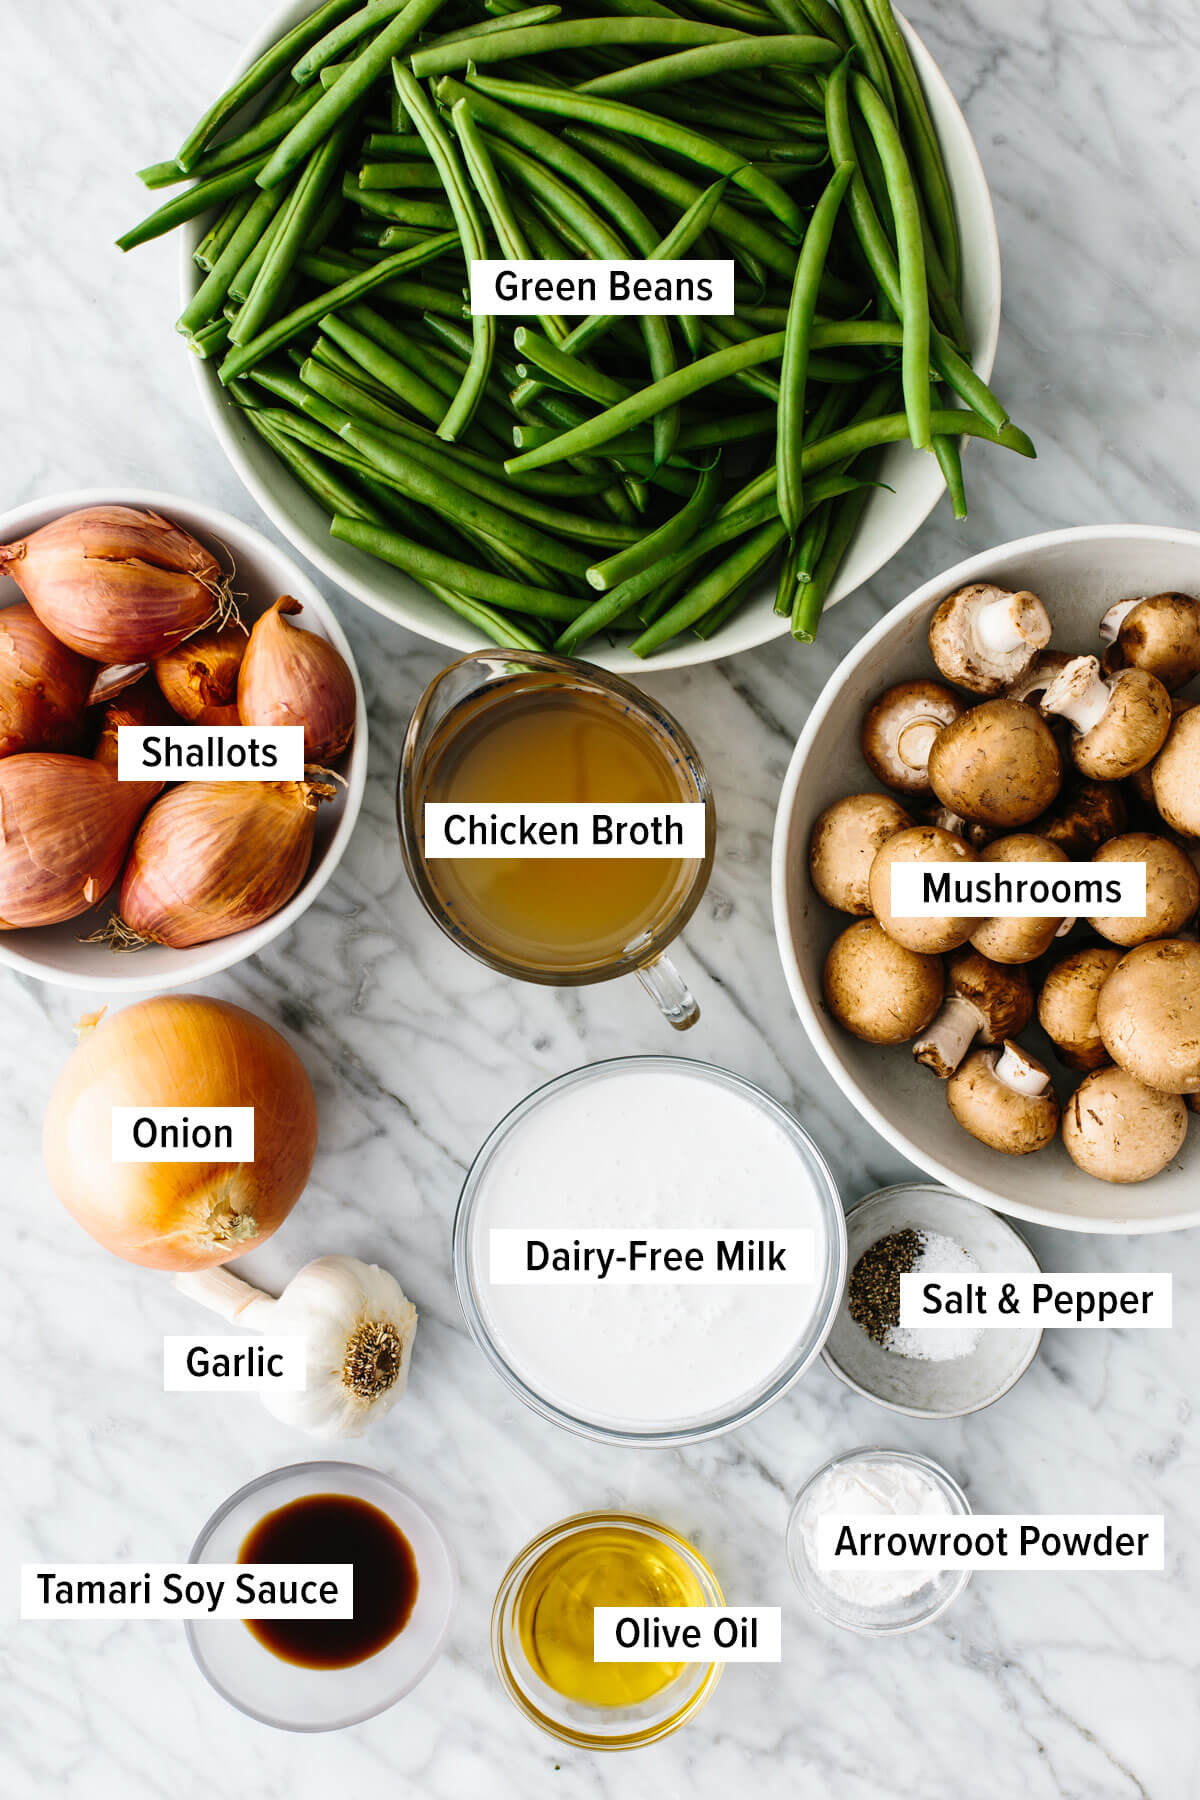 Ingredients for a healthy green bean casserole on a table.